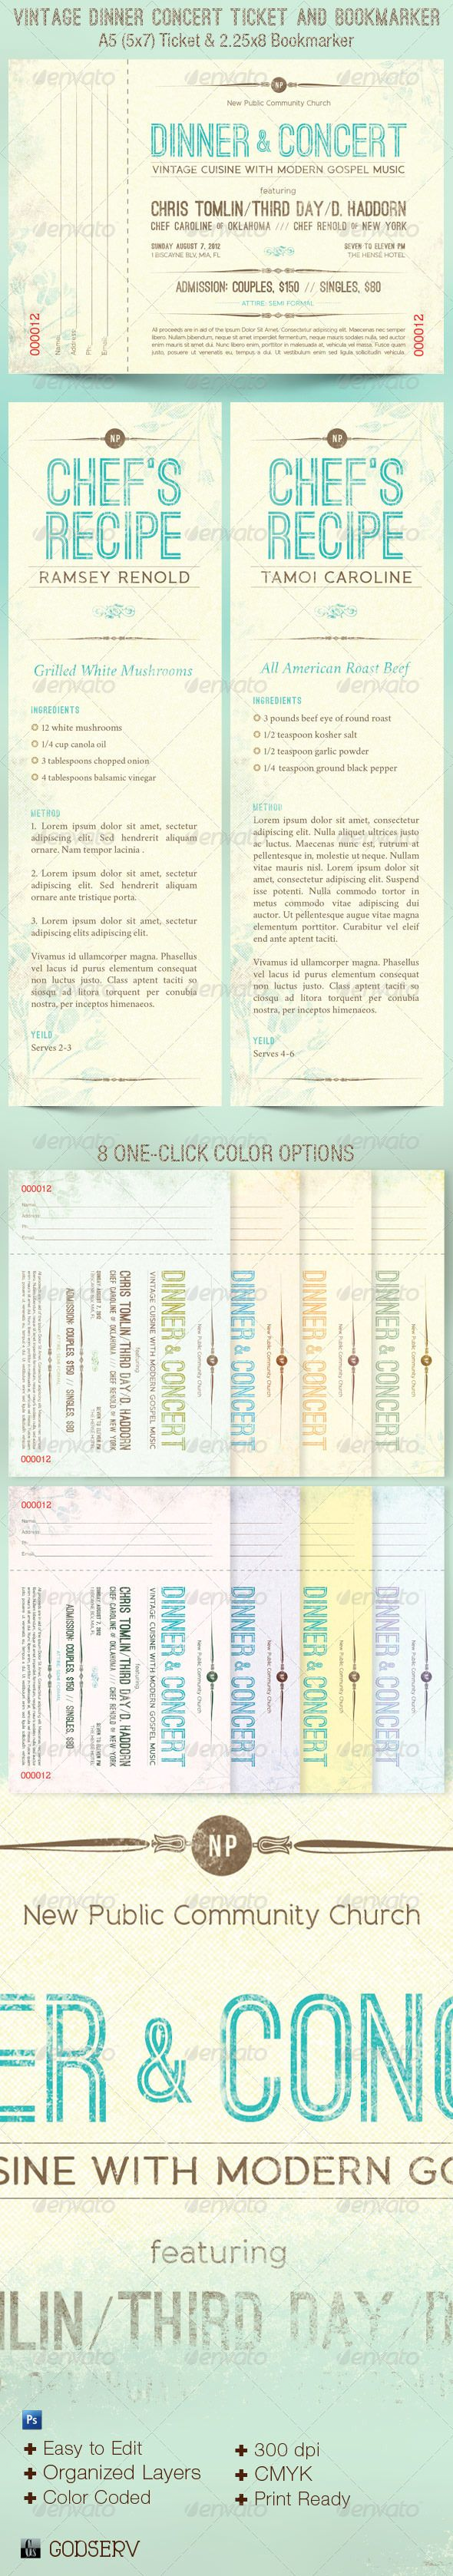 Concert Ticket Template Free Download Glamorous Vintage Dinner Concert Ticket Bookmarker  Celebration Church .